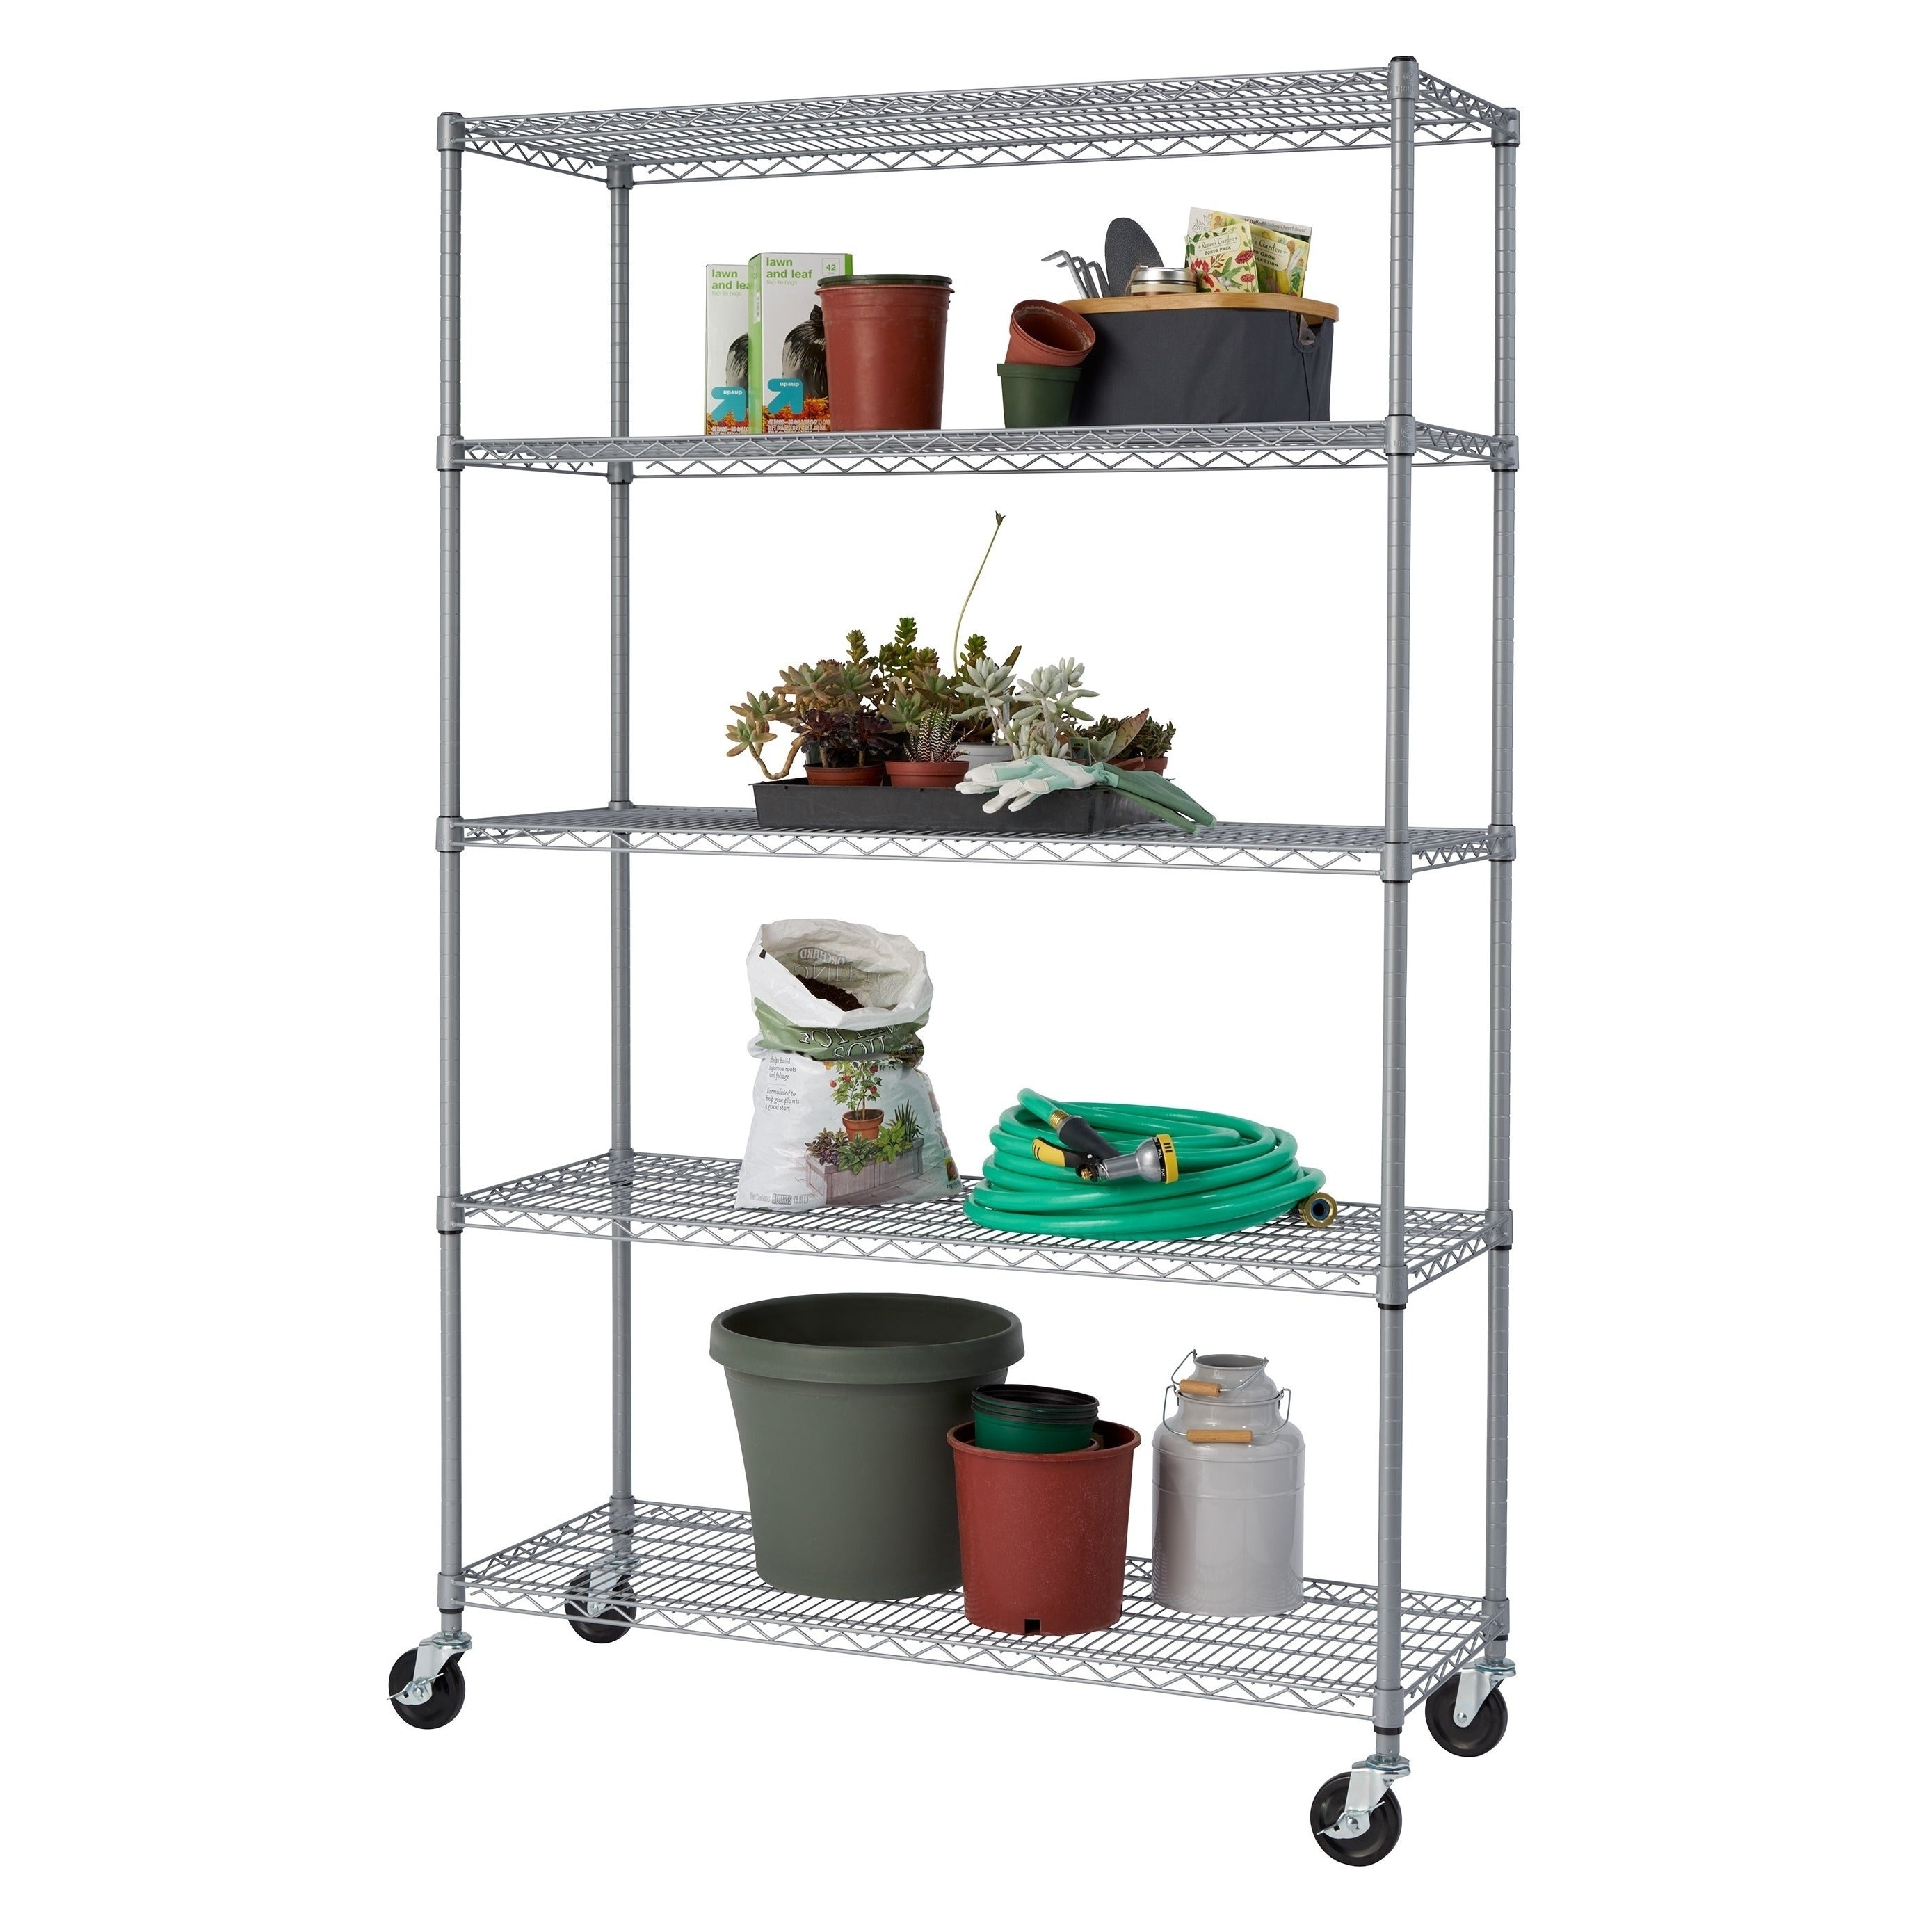 Trinity Home Entertainment Trinity NSF Adjustable 5-Tier Outdoor Wire Shelving Rack at Sears.com